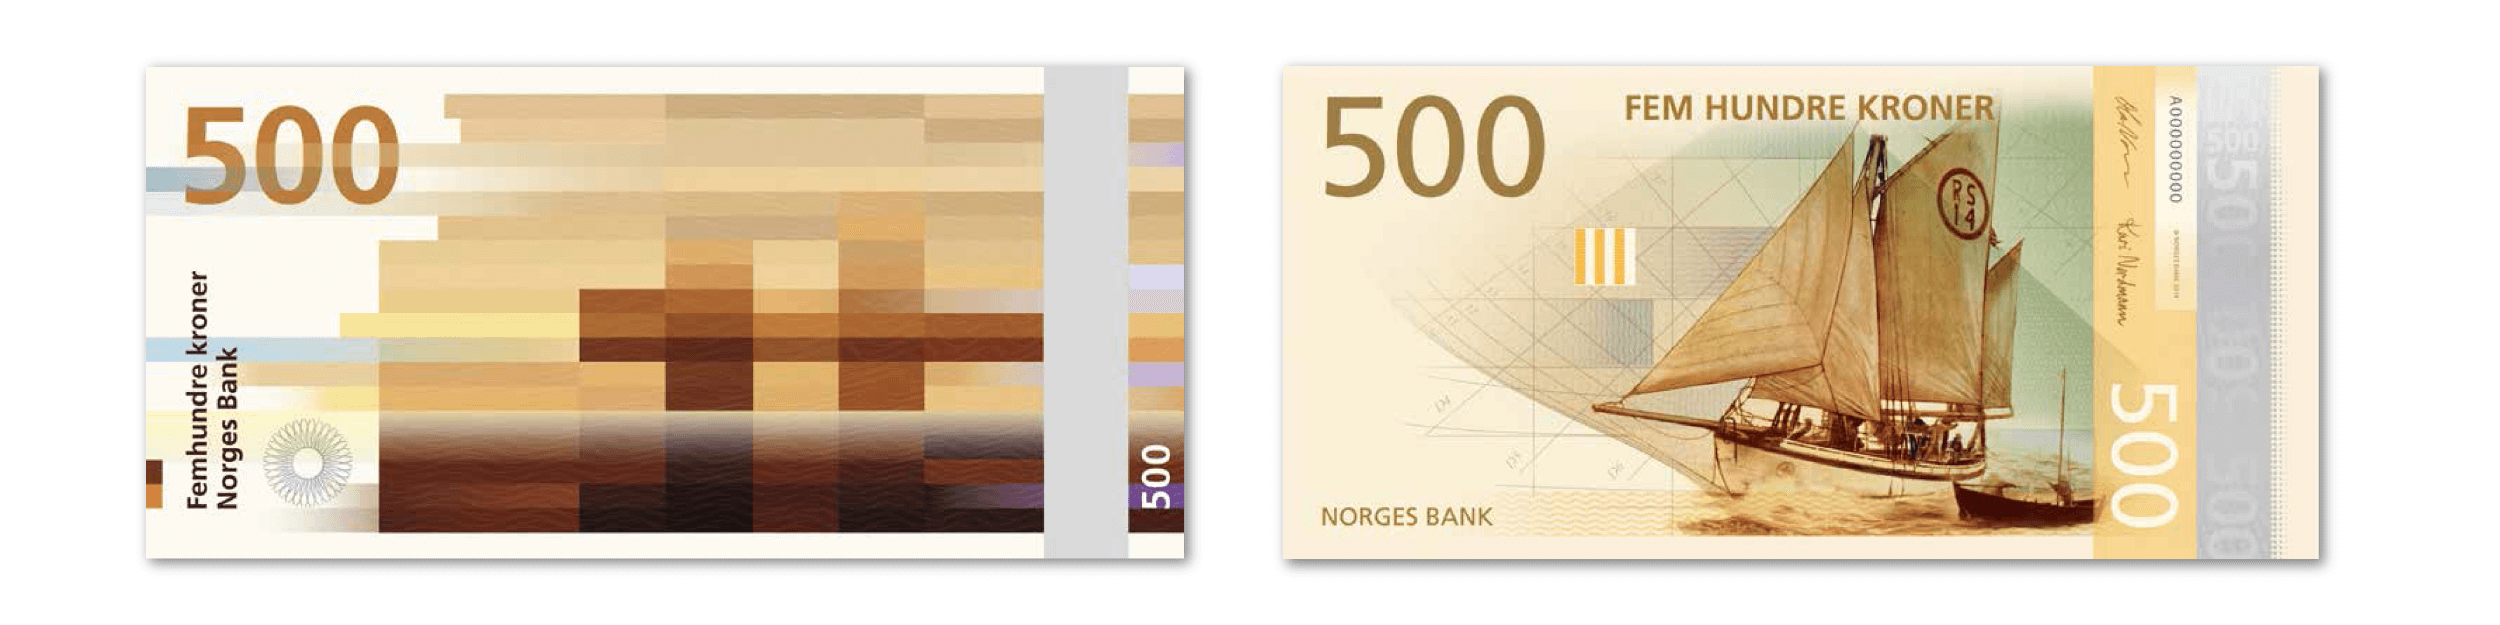 New Currency Norway Norway Currency Redesign_500